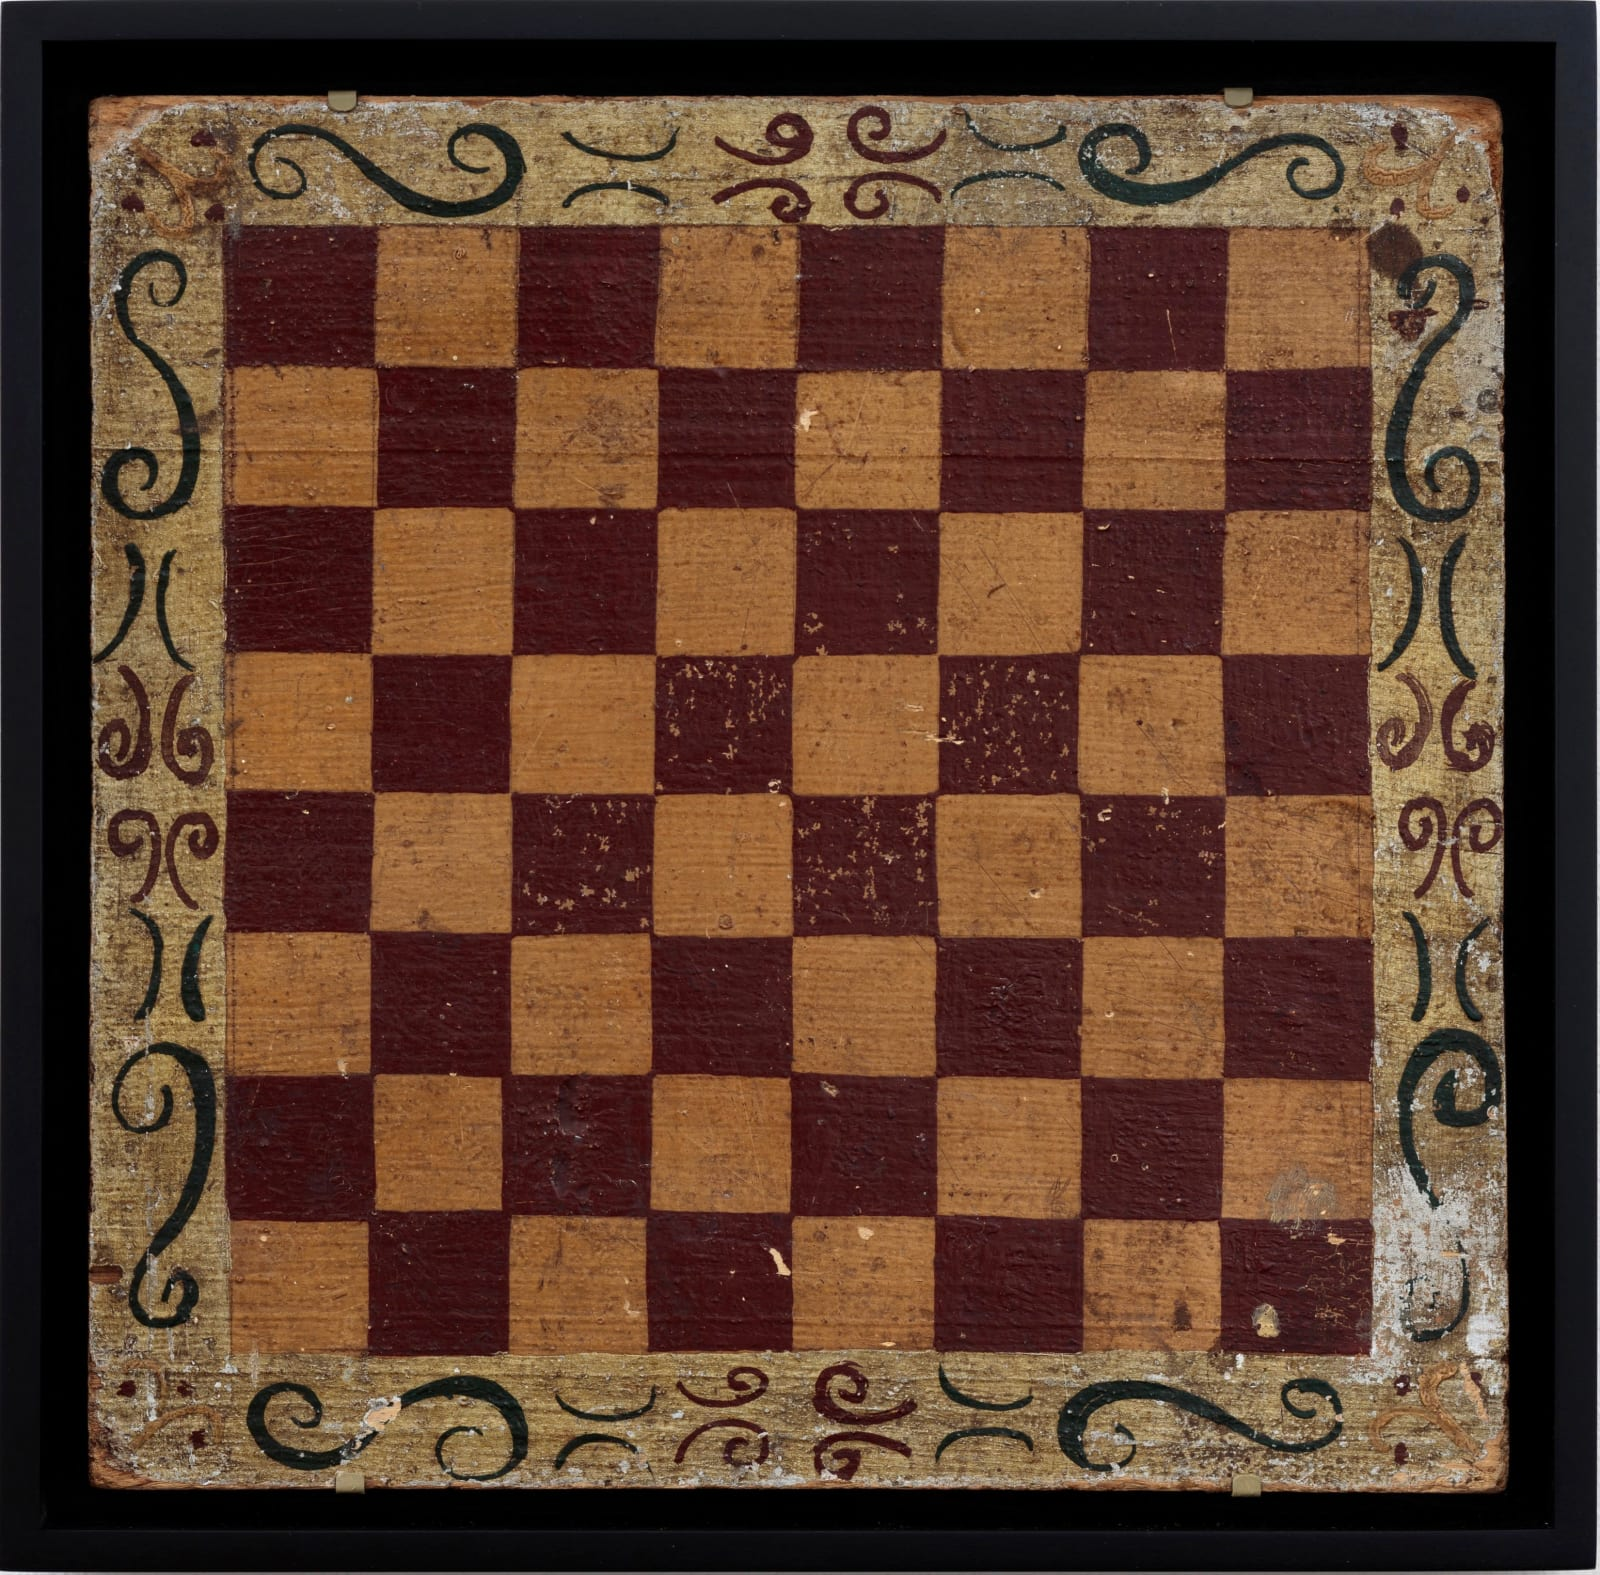 CHECKERS GAME BOARD WITH DECORATIVE BORDER, C. 1900 Oil enamel on wood panel 12 1/2 x 12 1/4 in. 31.8 x 31.1 cm. (AU 242)